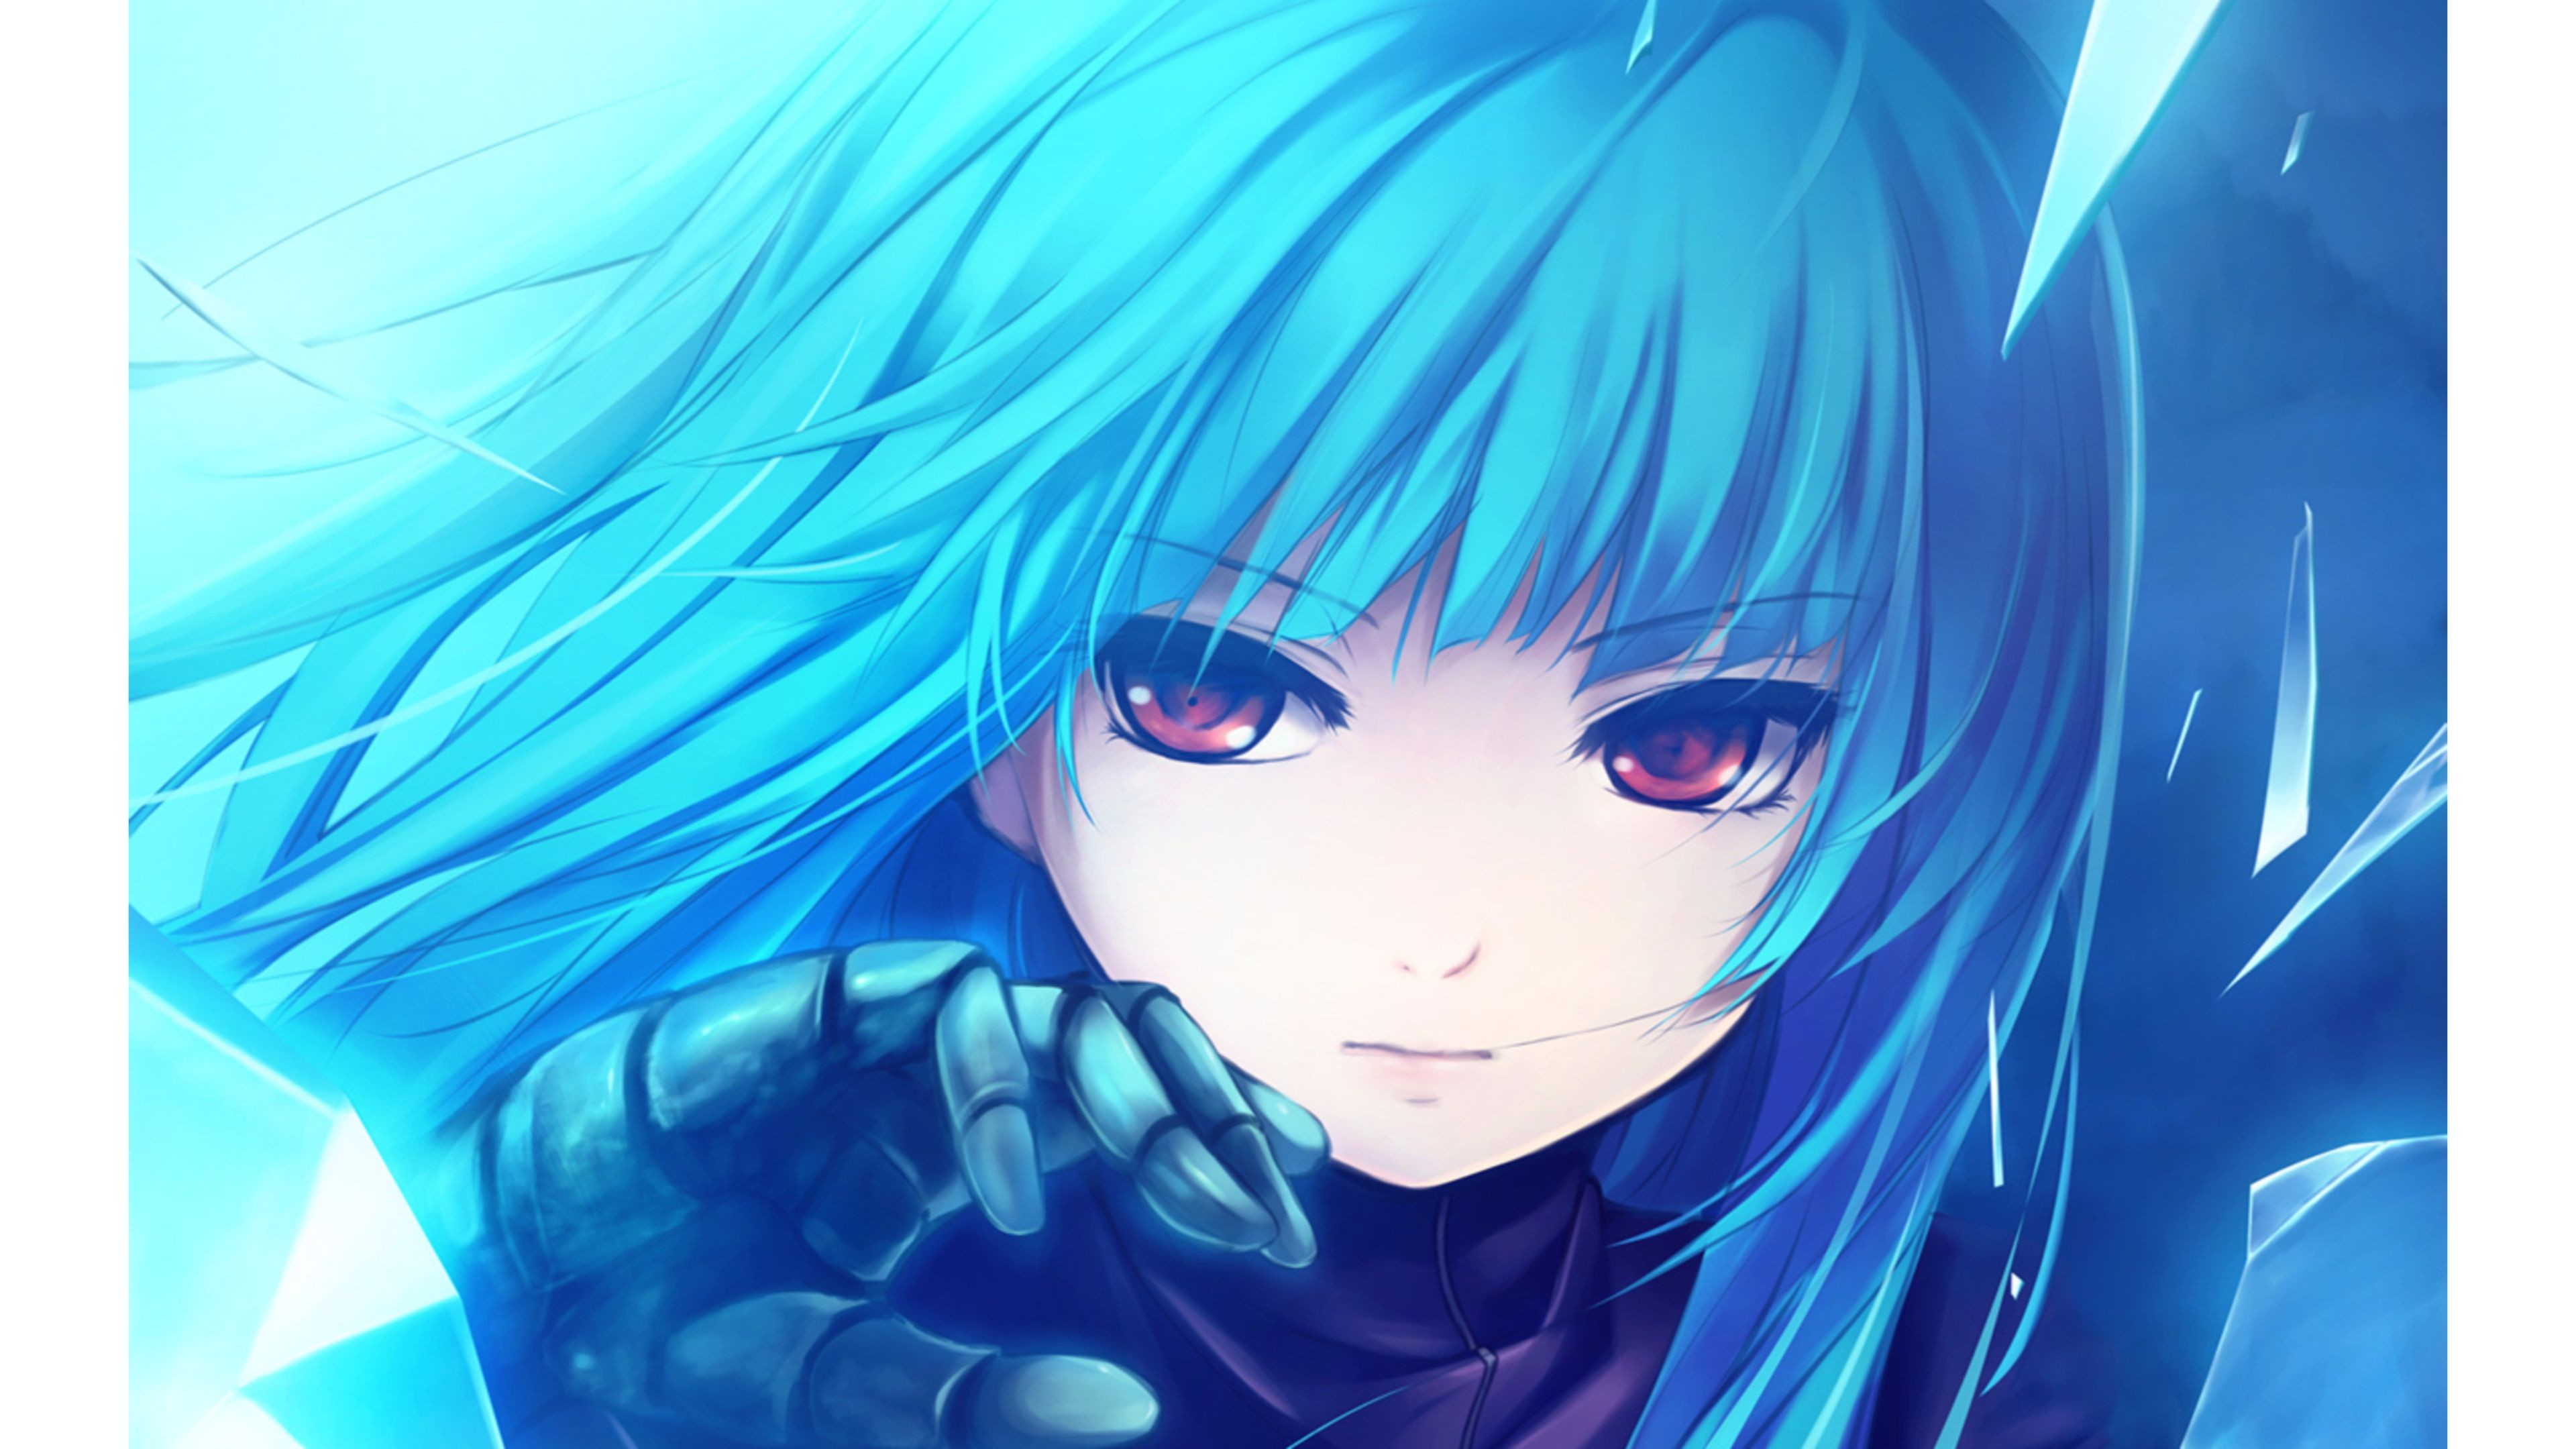 Free download 1366x768 (laptop) anime wallpapers in high resolution. 4K Anime wallpaper ·① Download free full HD wallpapers for ...